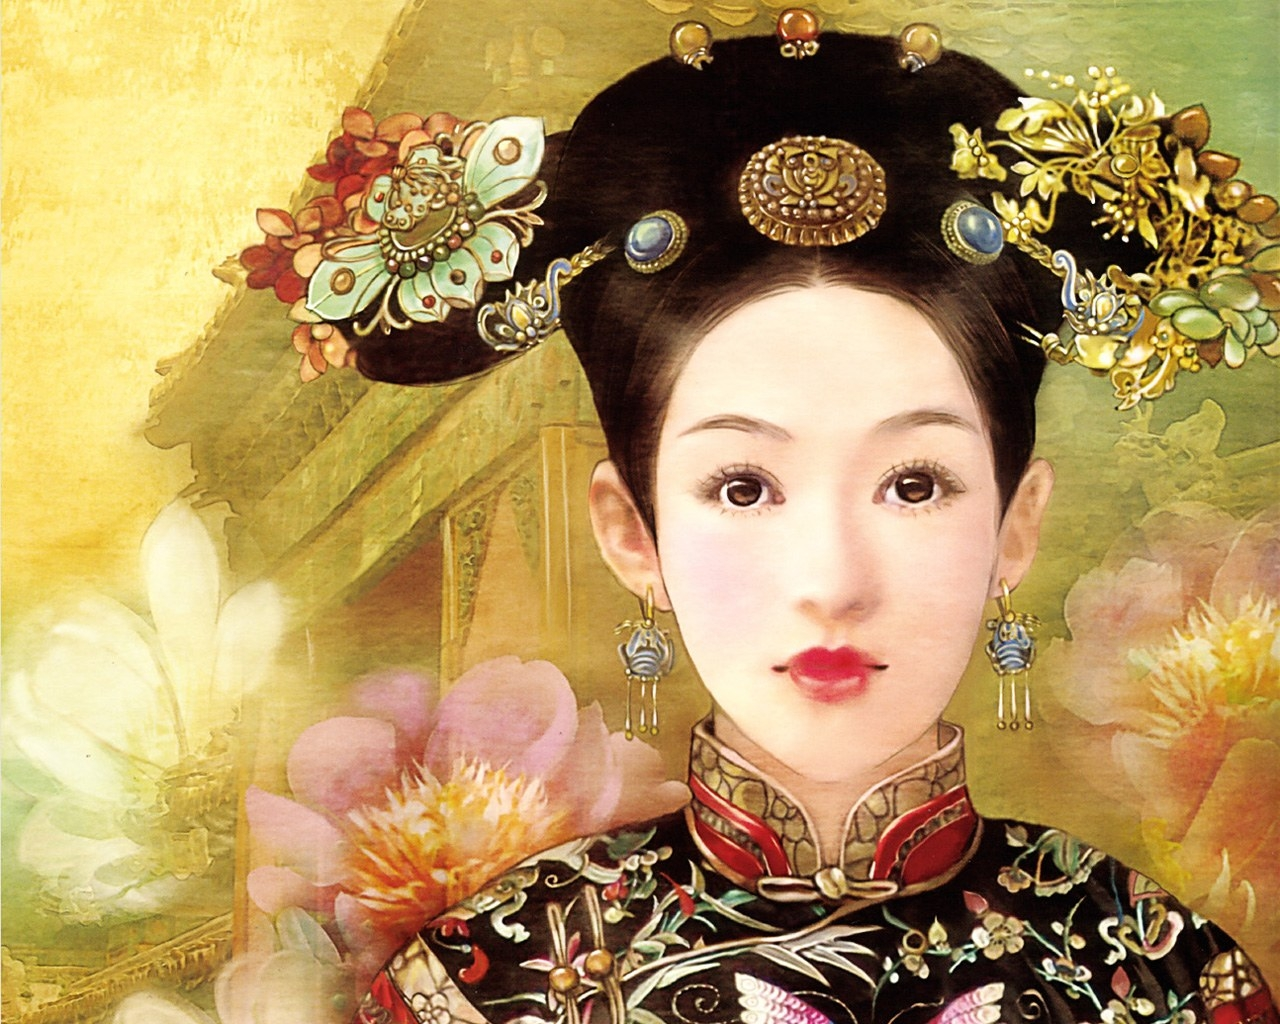 1280x1024 > The Ancient Chinese Beauty Wallpapers